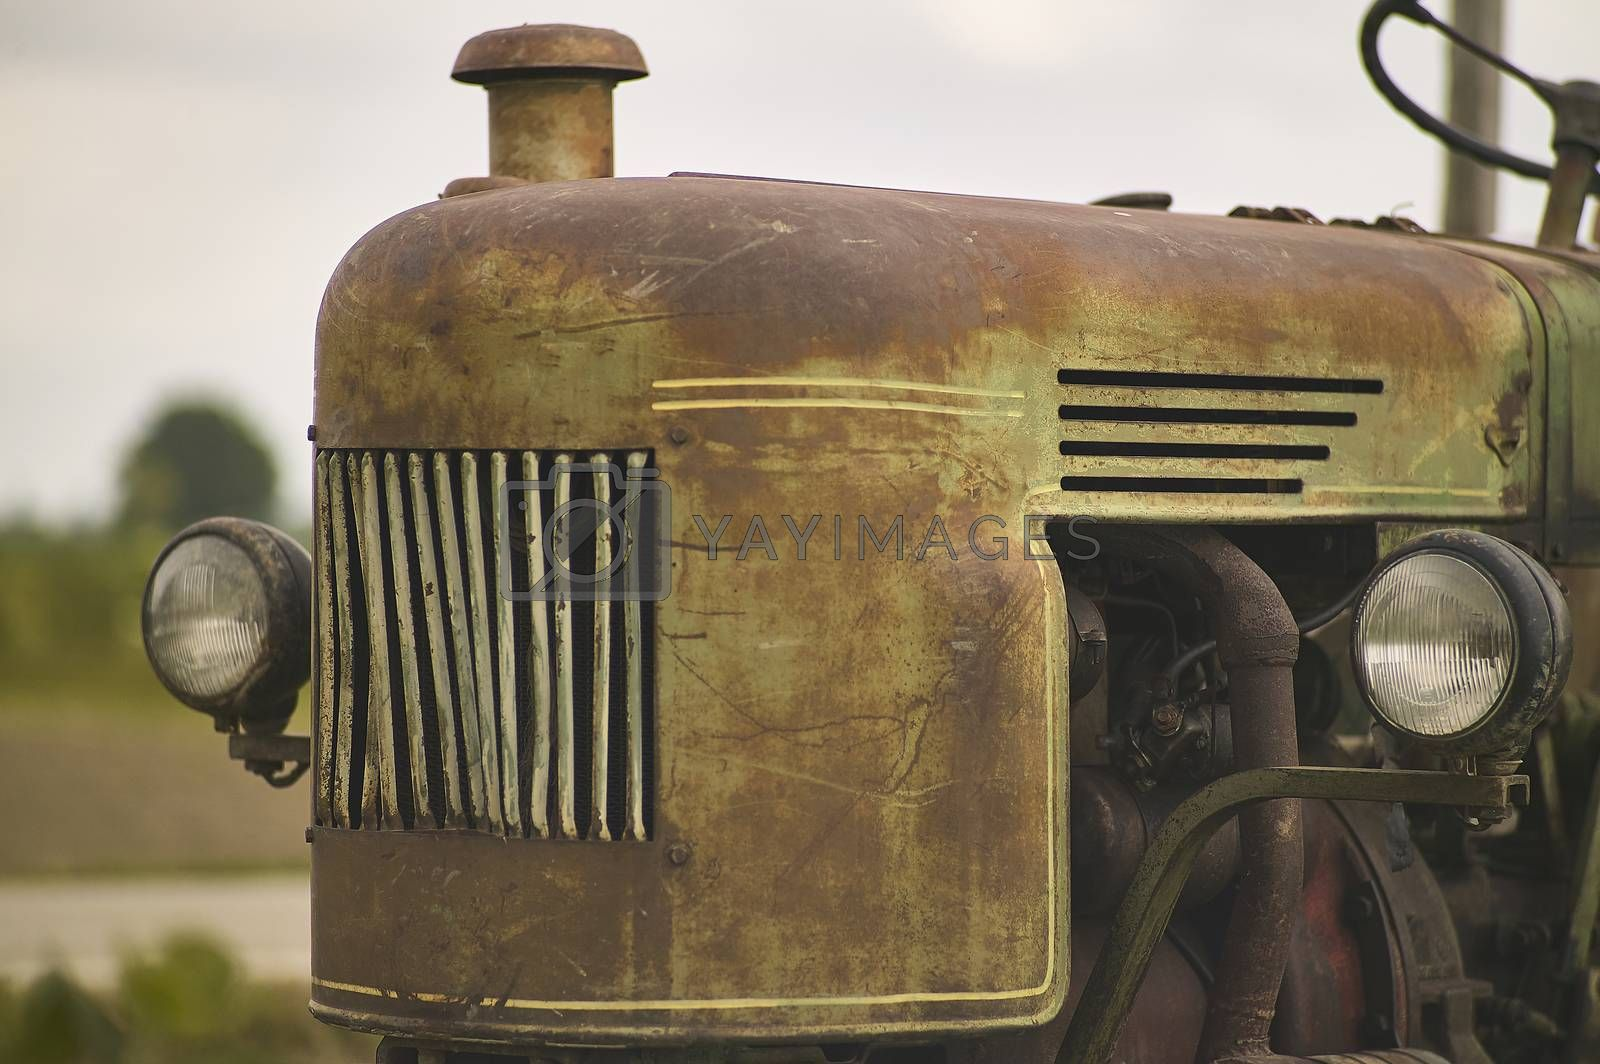 Detail of Old vintage tractor worn and with signs of time in a field ready for another hard day's work